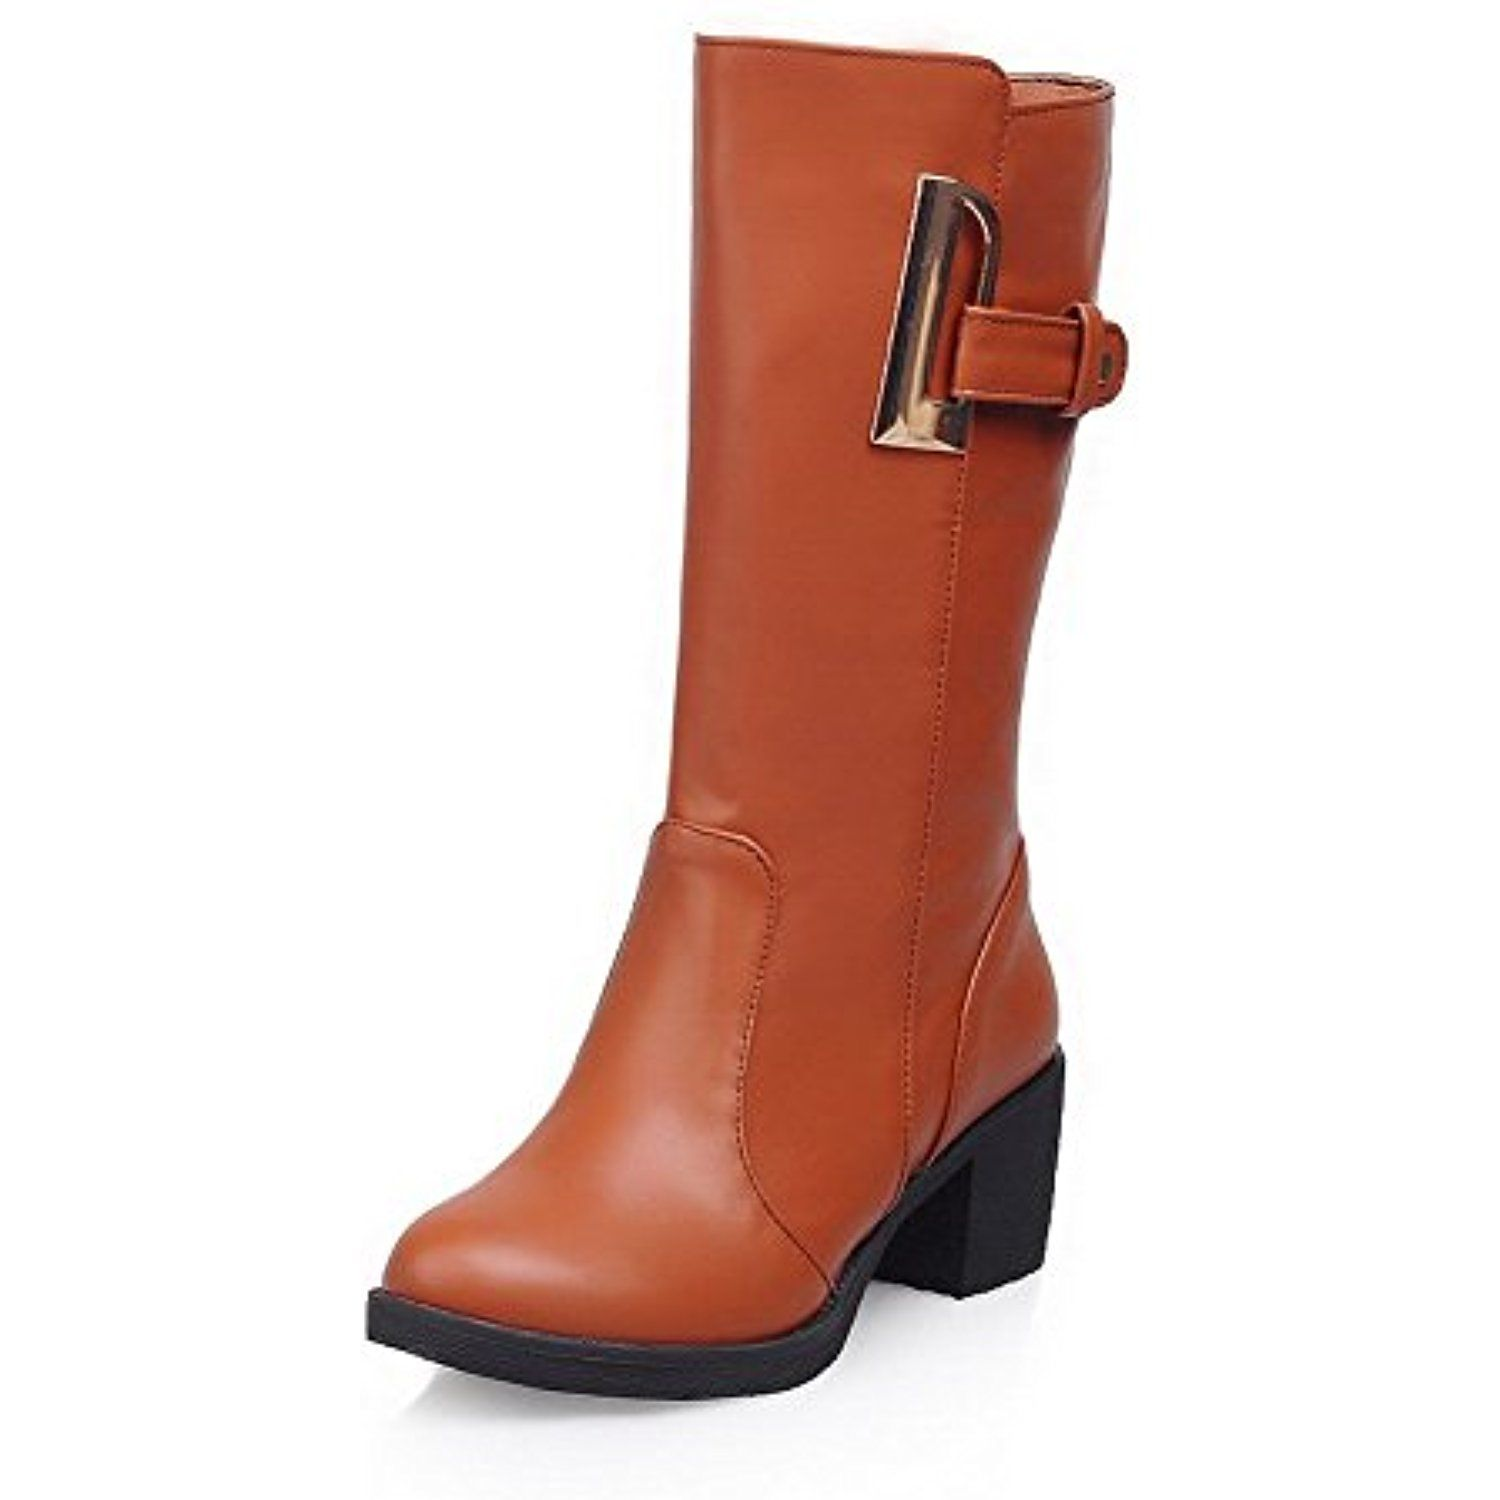 Women S Pu Mid Top Solid Pull On Kitten Heels Boots See This Great Product This Is An Affiliate Link And I R Kitten Heel Boots Pull On Boots Kitten Heels